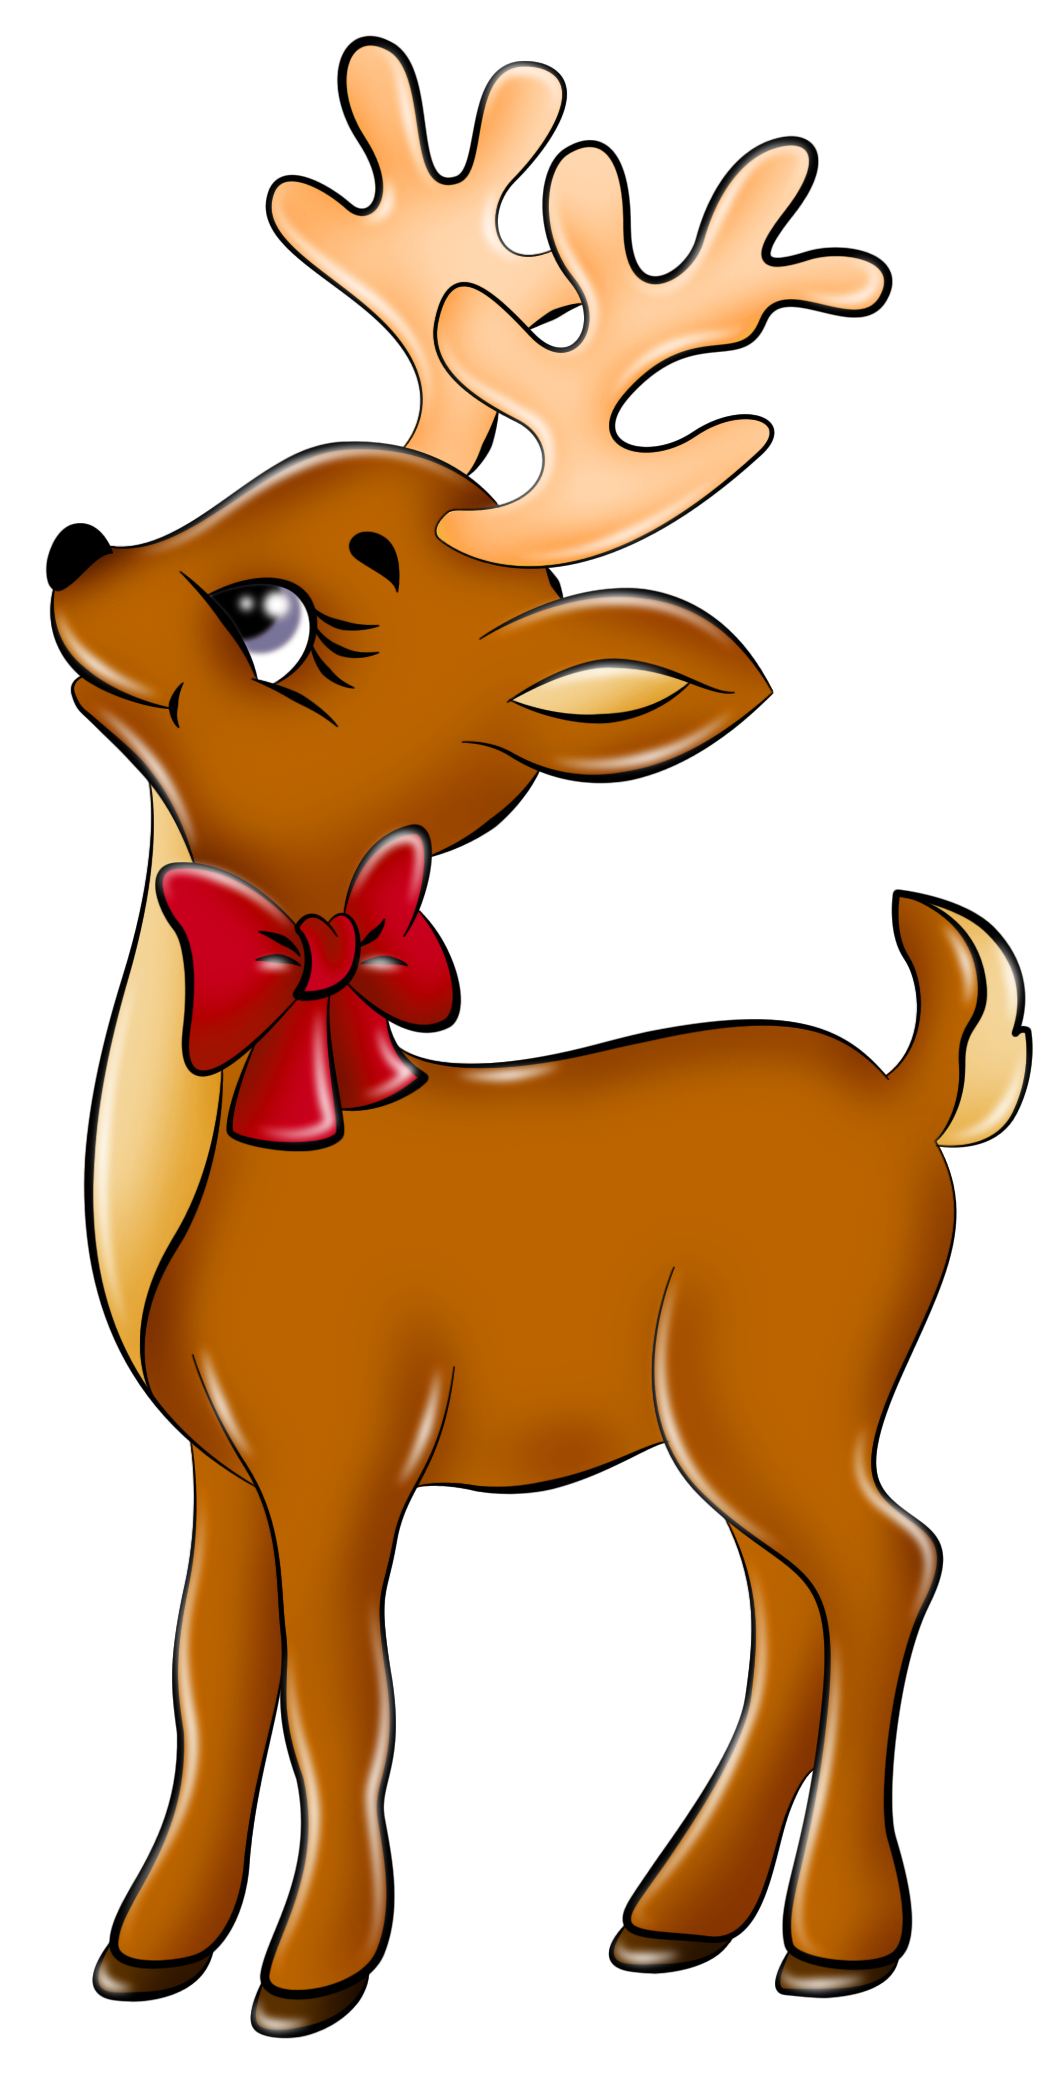 Deer christmas. Cute reindeer clip art